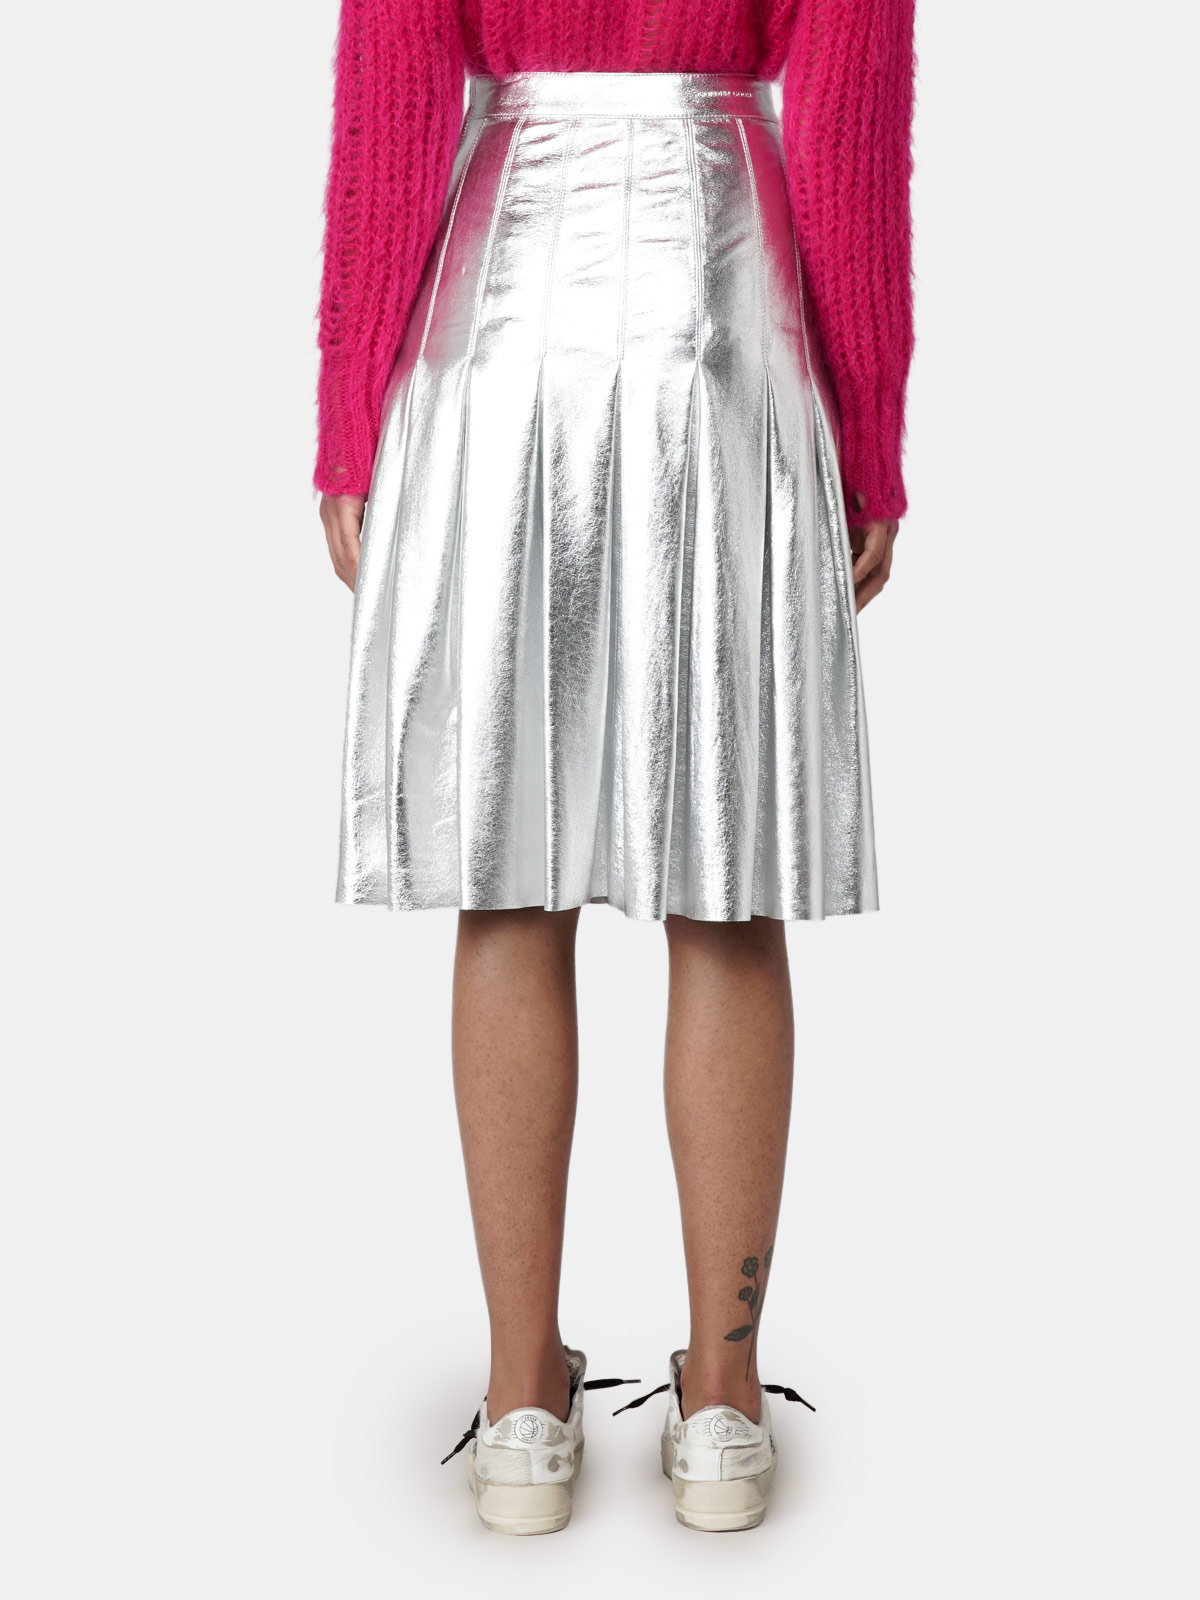 Golden Goose - Pleated Anastasia skirt in silver laminated leather in